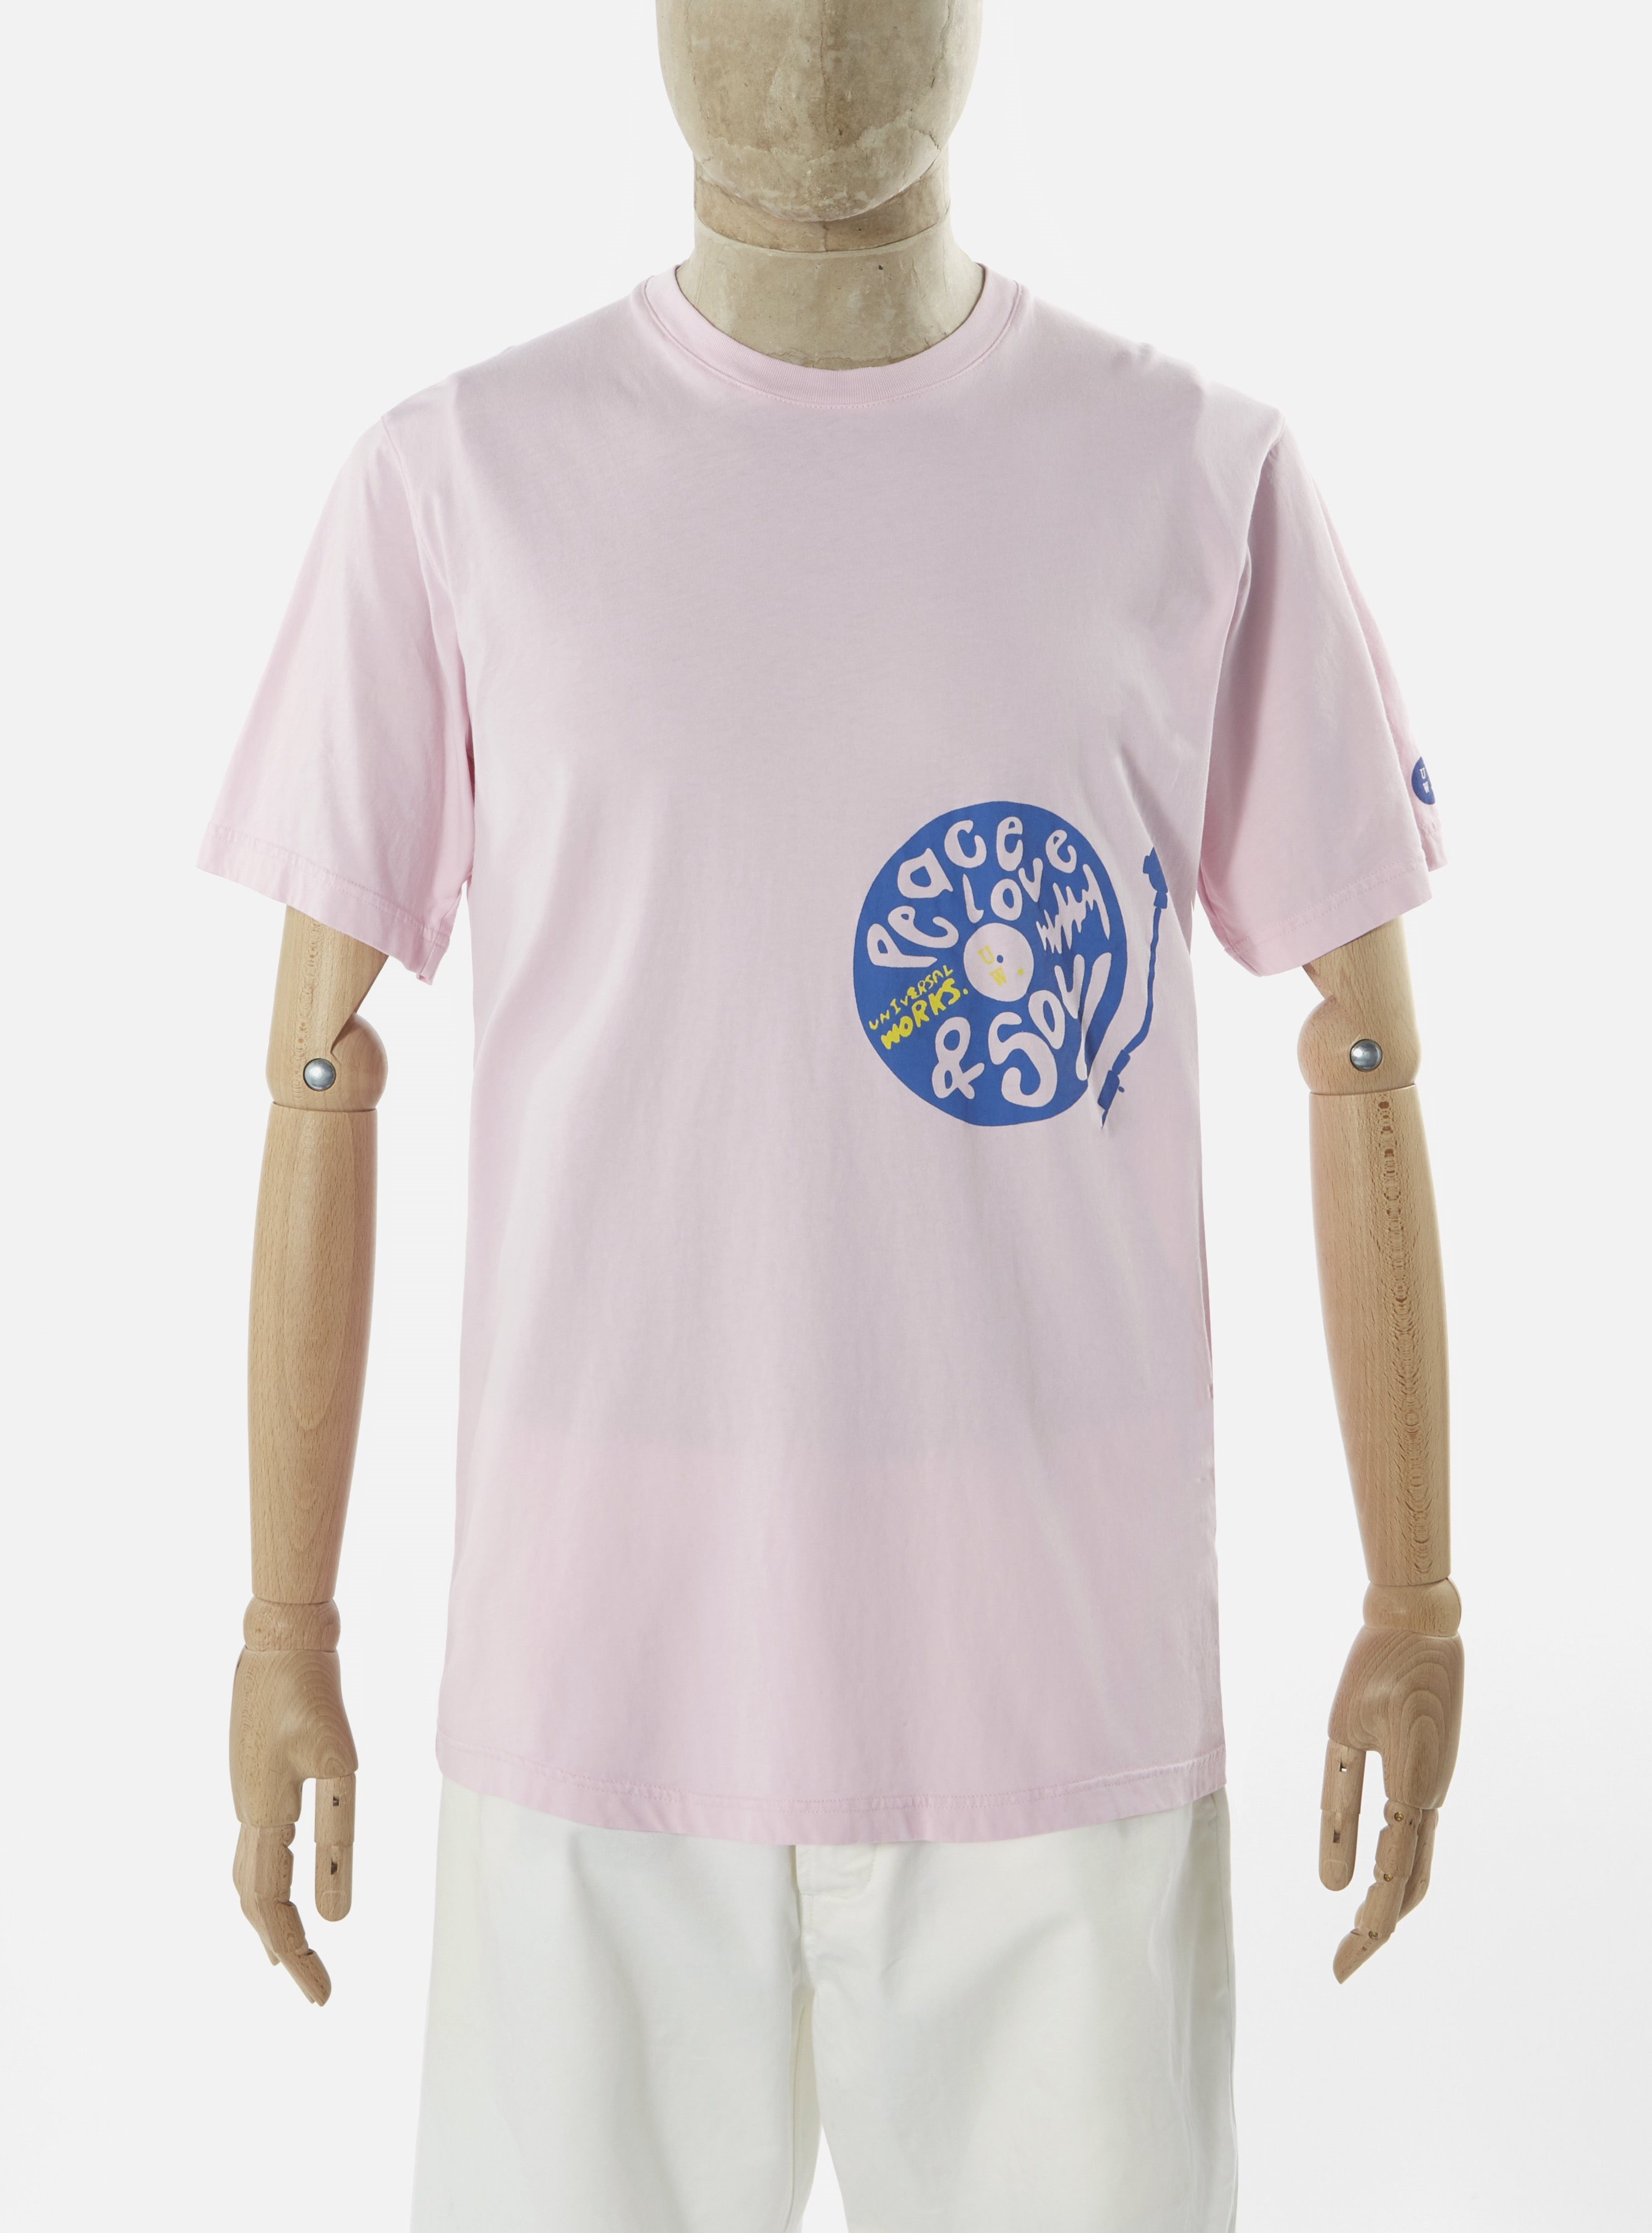 Universal Works Print Tee in Pink Organic 'Peace, Love and Soul' Jersey